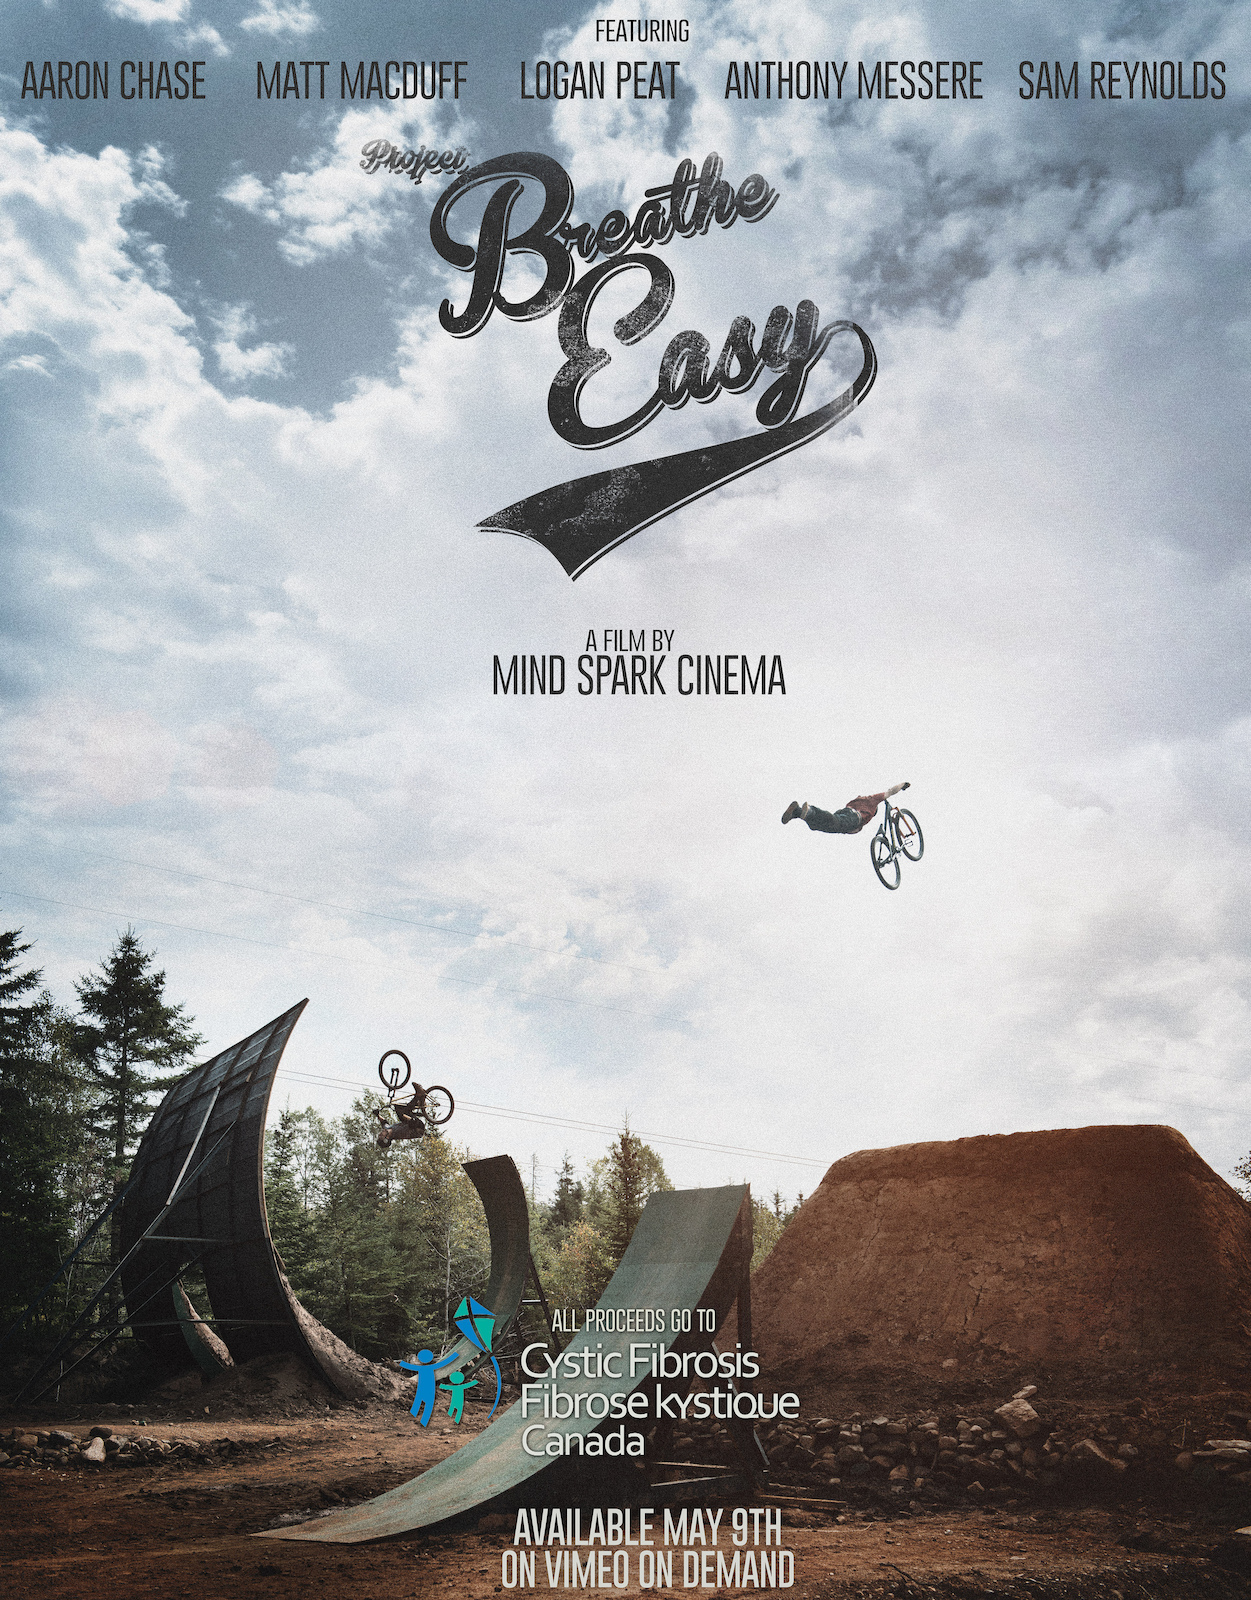 Matt MacDuff s Project Breathe Easy. Starring Matt MacDuff Aaron Chase Anthony Messere Logan Peat and Sam Reynolds.